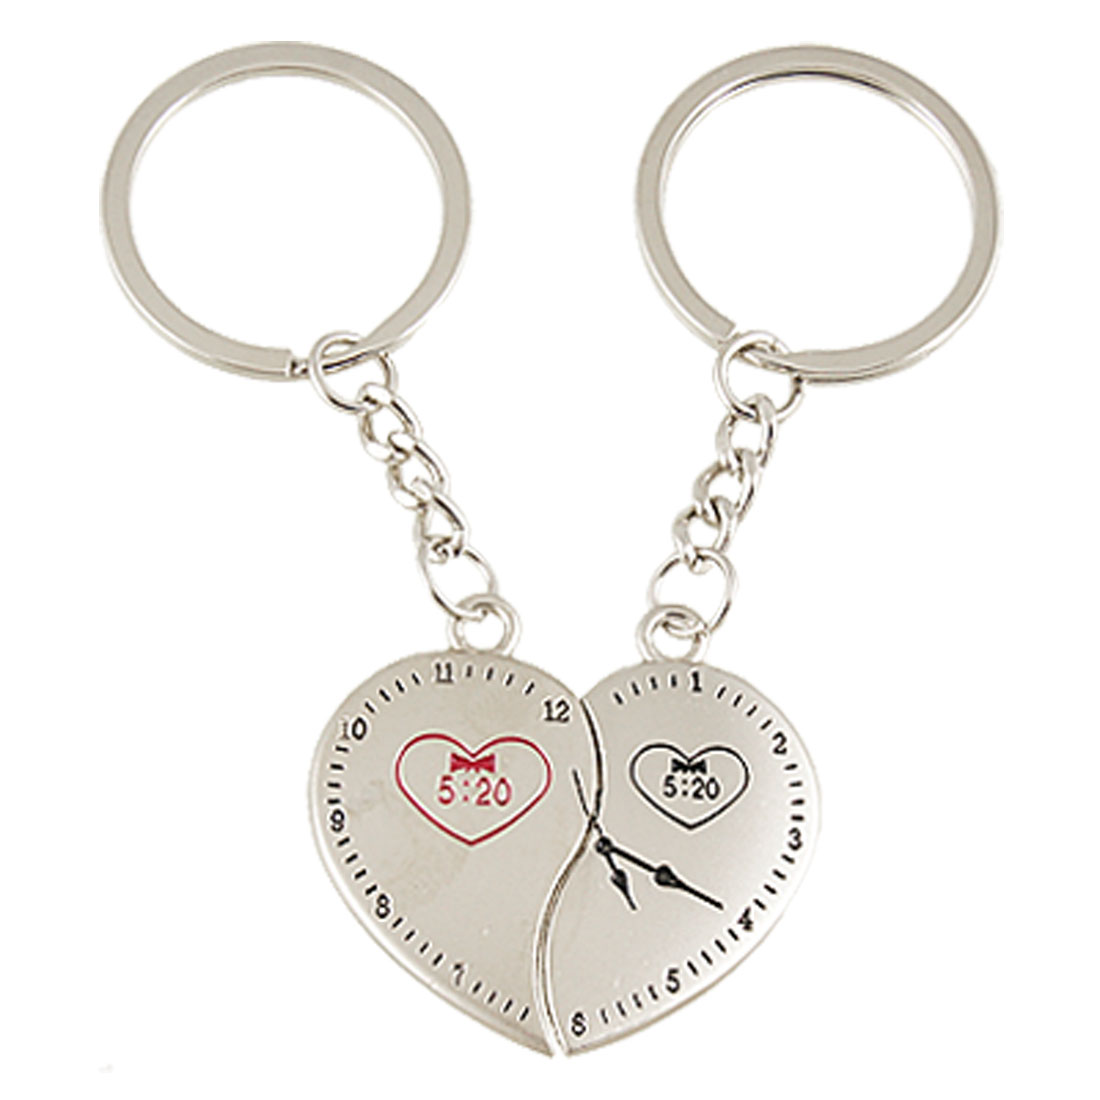 Lover Valentine Day Magnetic Heart Keyring Key Chains Silver Tone 2 Pcs